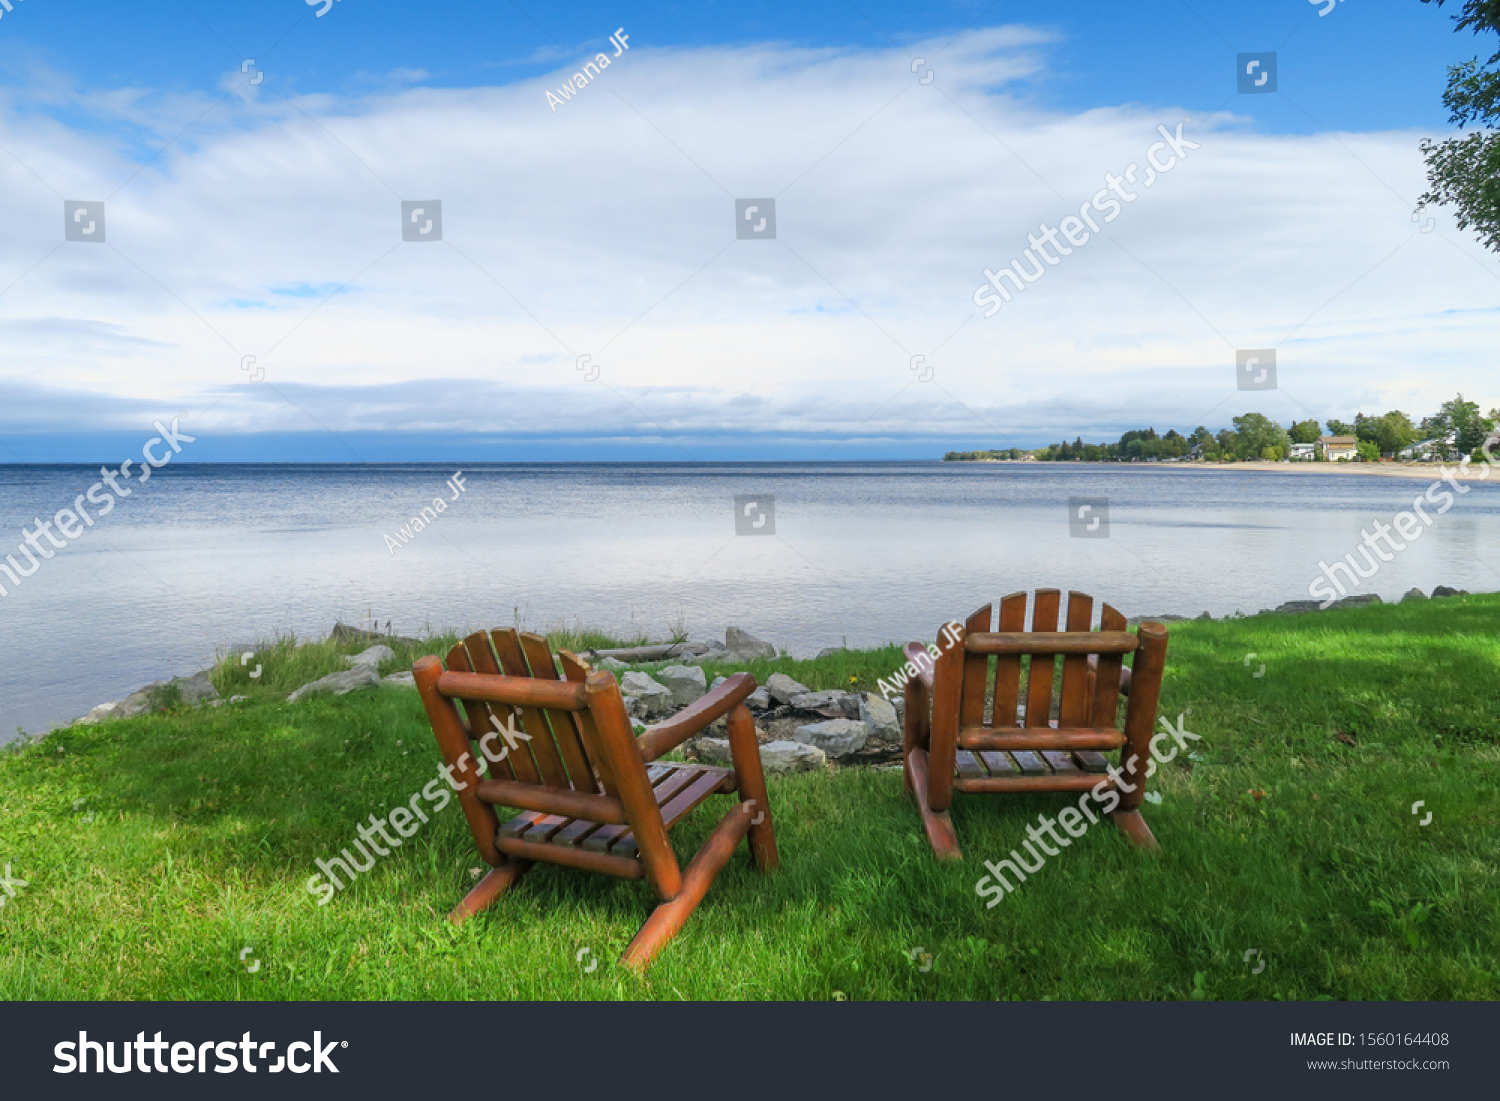 stock-photo-peaceful-view-of-two-wooden-